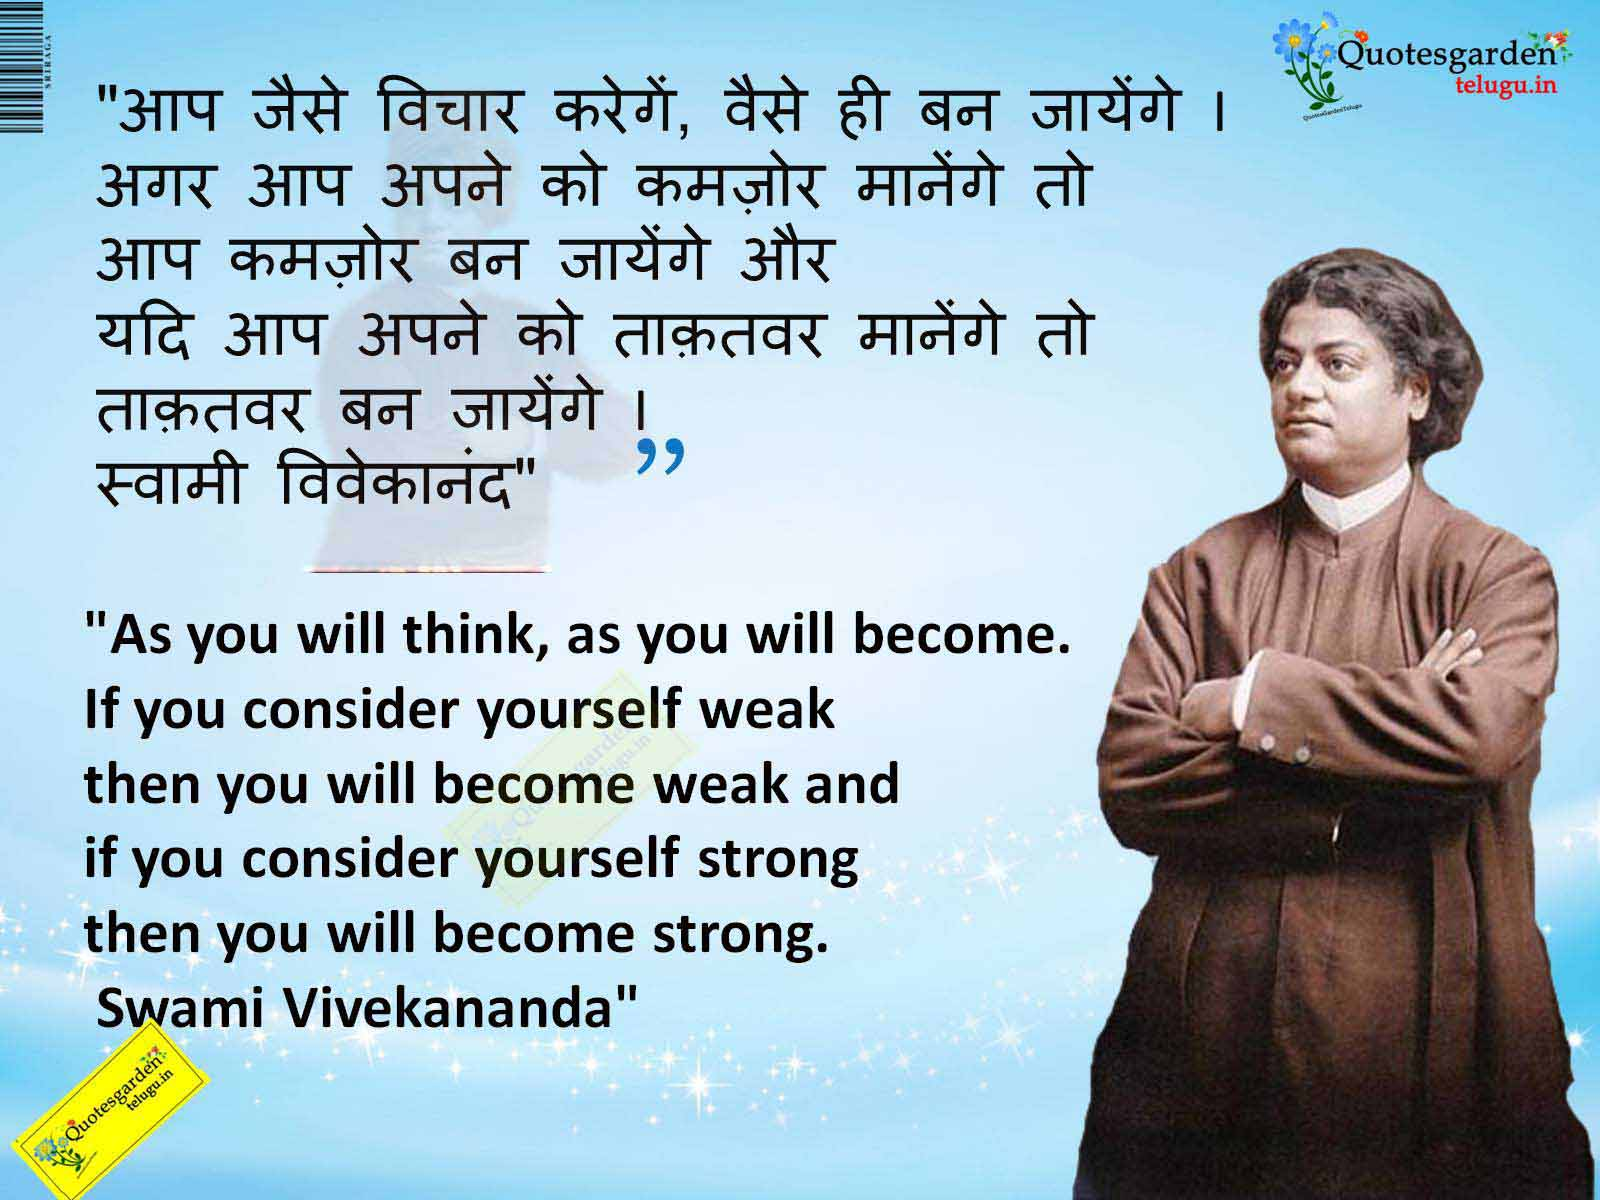 Swami Vivekananda Thoughts Vivekananda Quotes In Hindi English